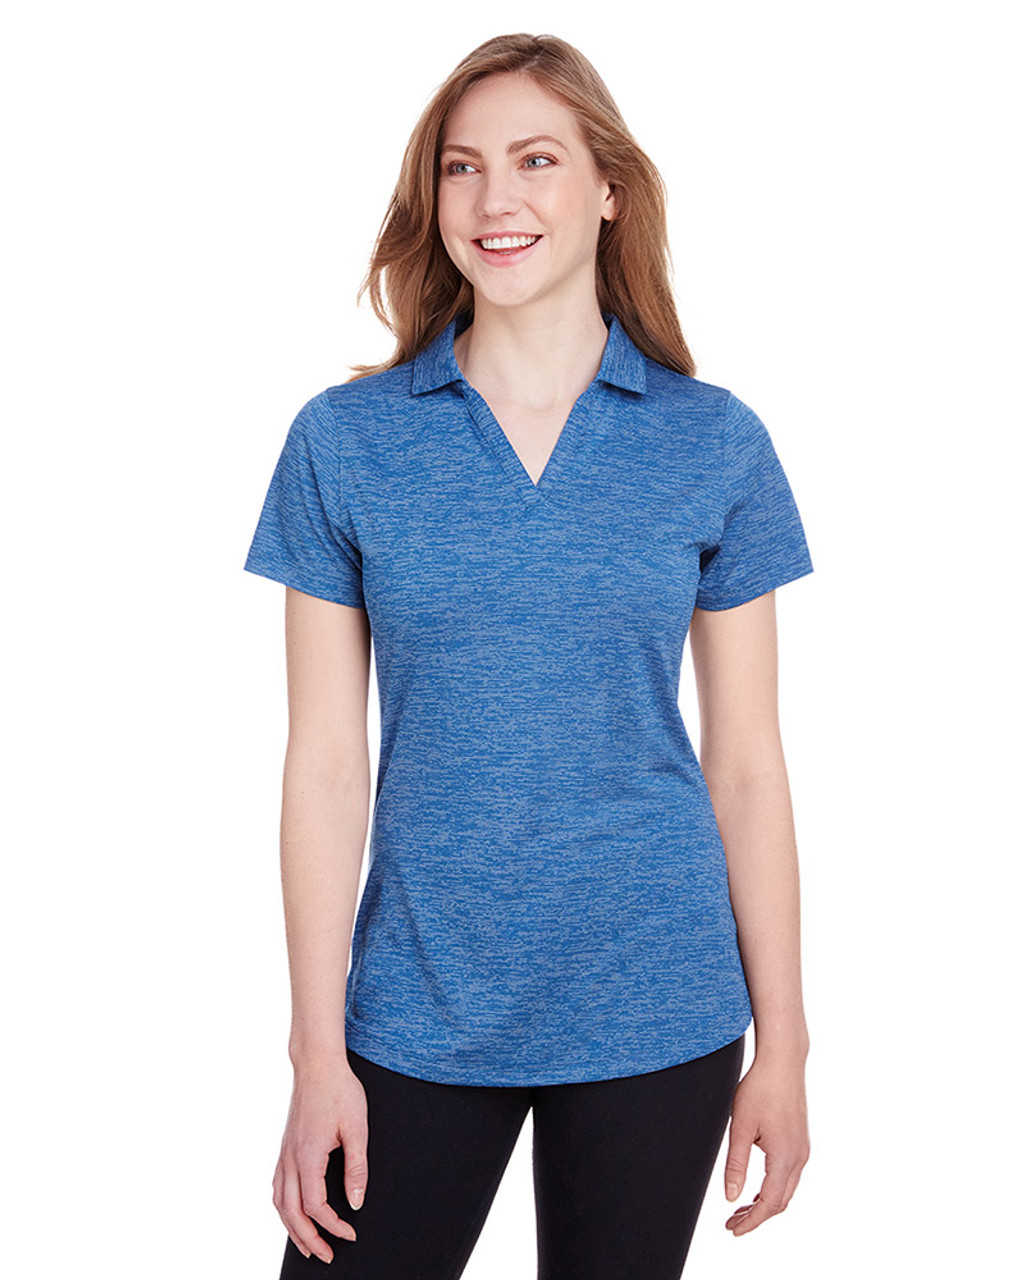 Lapis Blue - 596802 Puma Golf Ladies' Icon Heather Polo | Blankclothing.ca